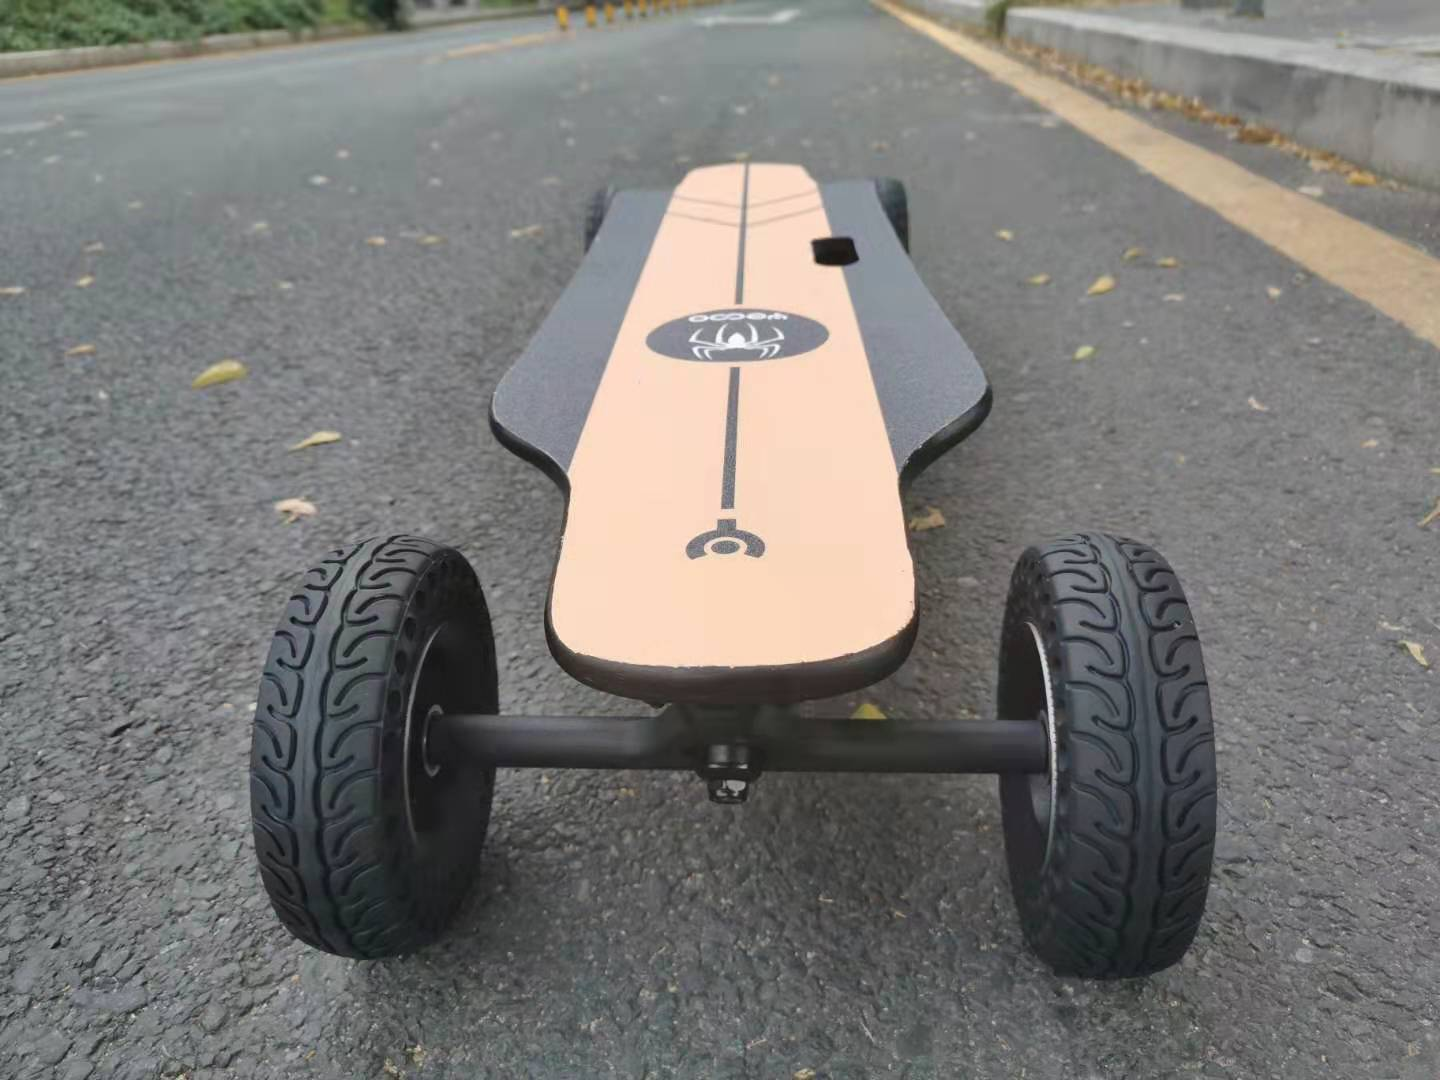 Yecoo GT all terrain electric skateboard